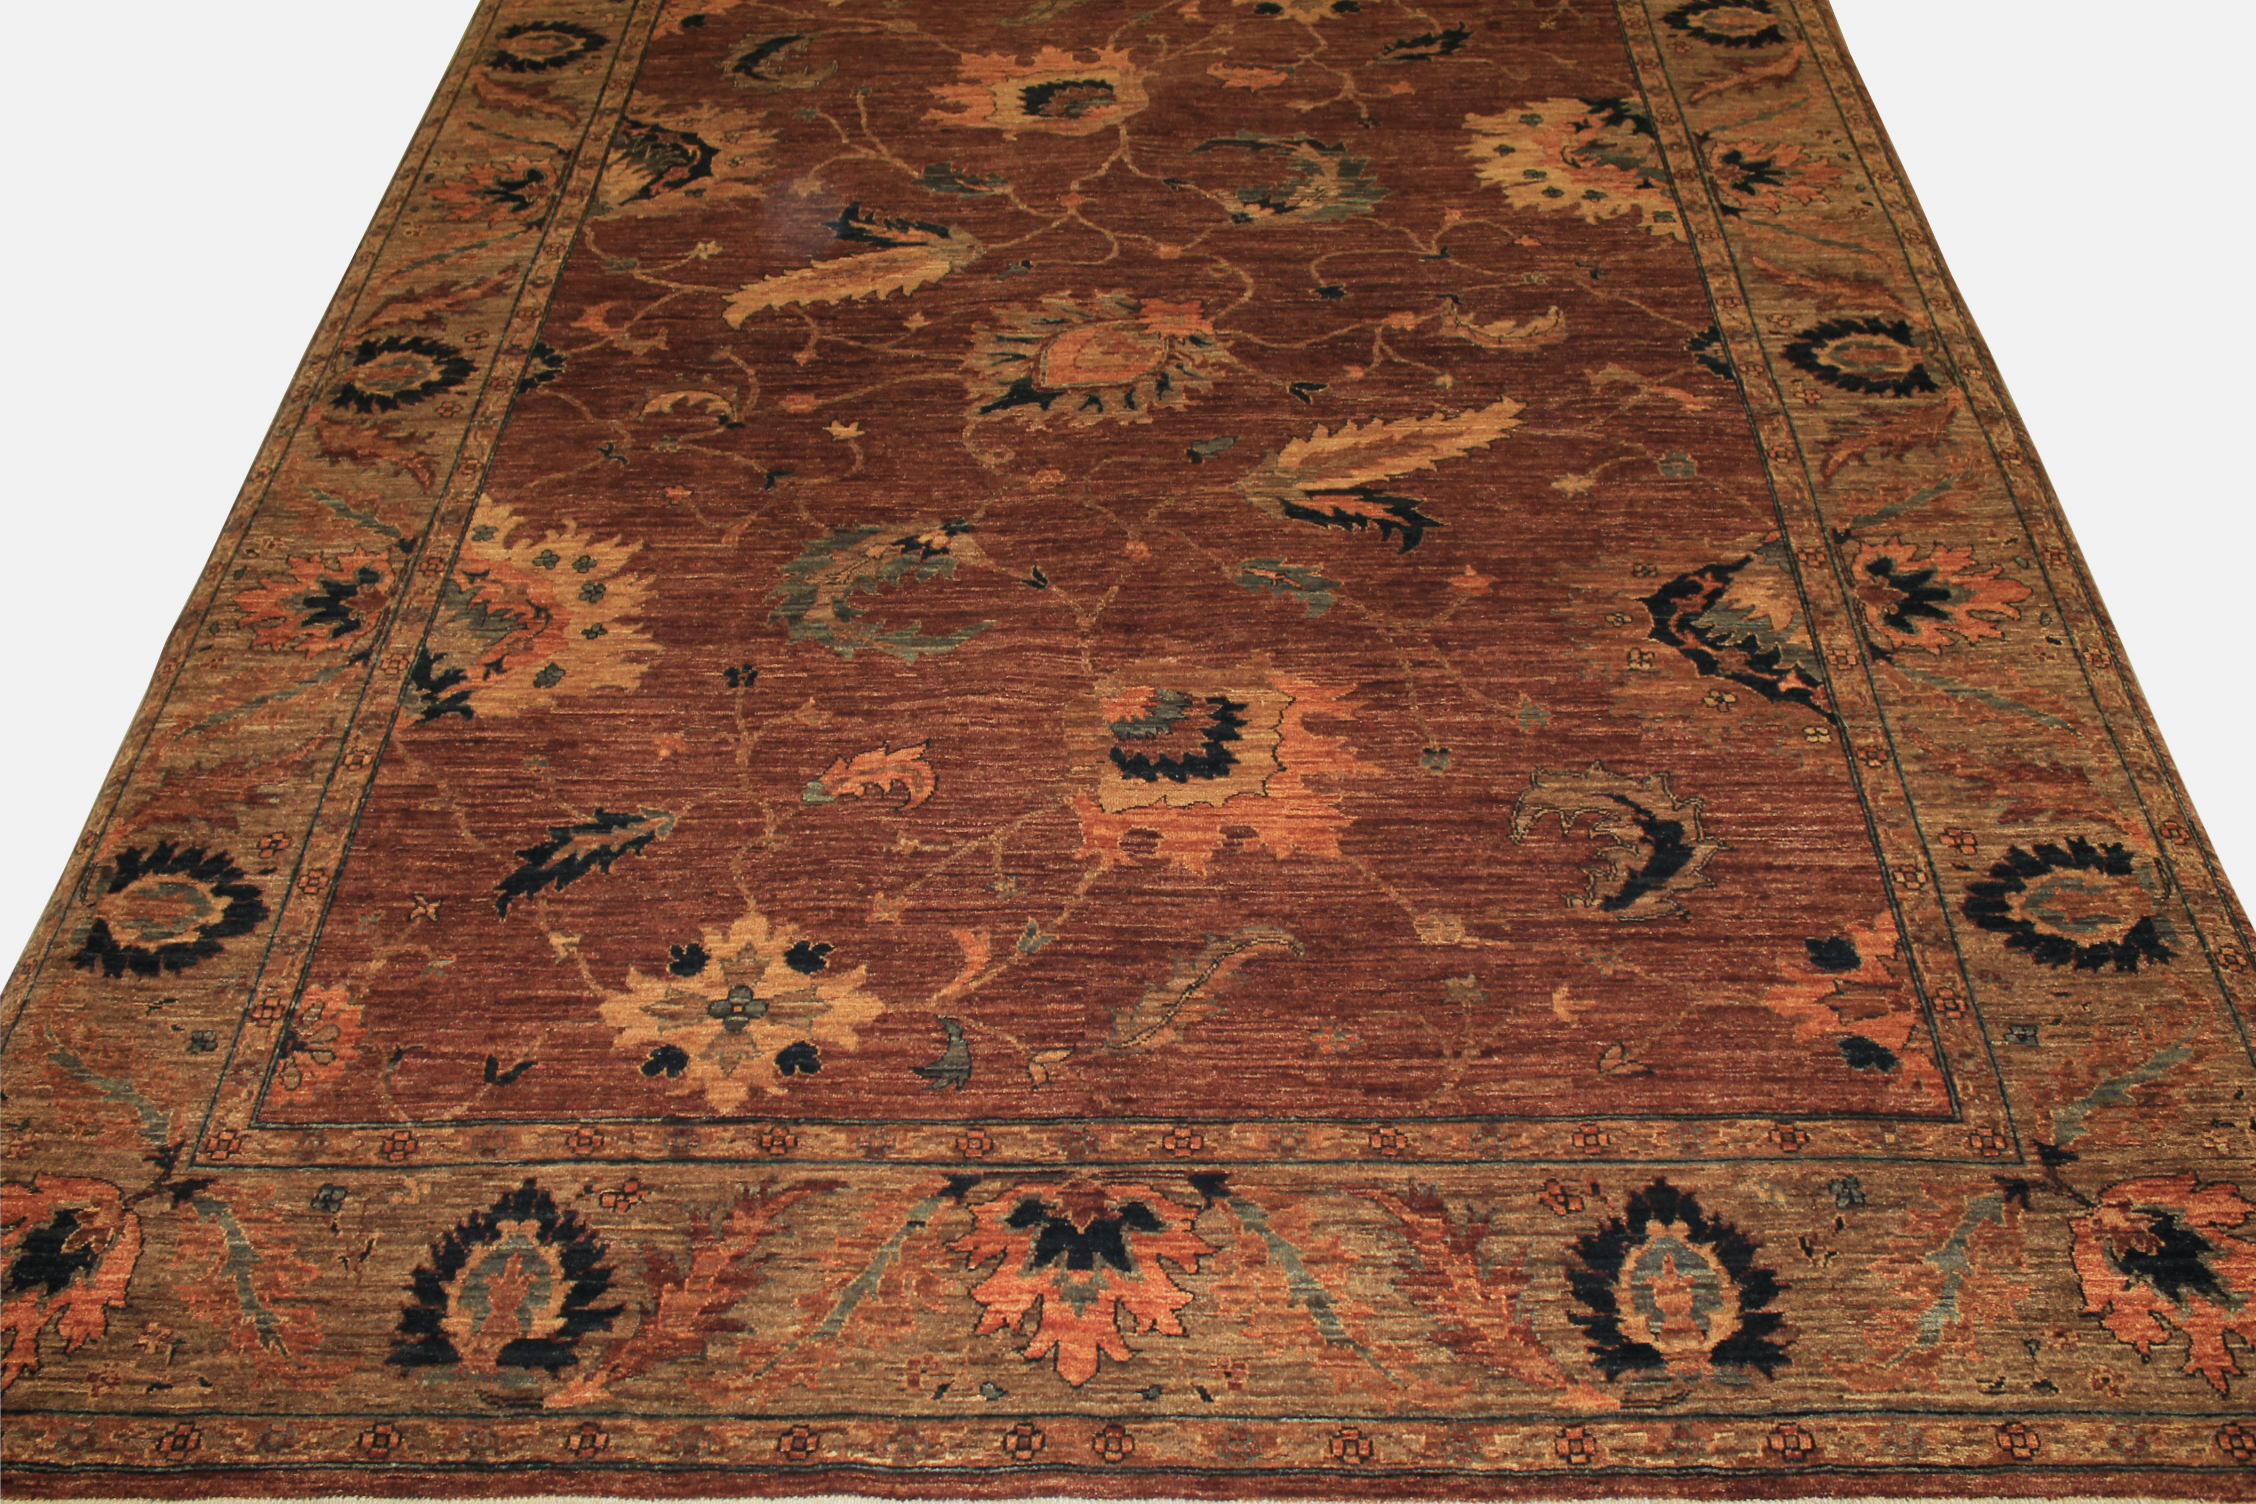 9x12 Antique Revival Hand Knotted Wool Area Rug - MR12409